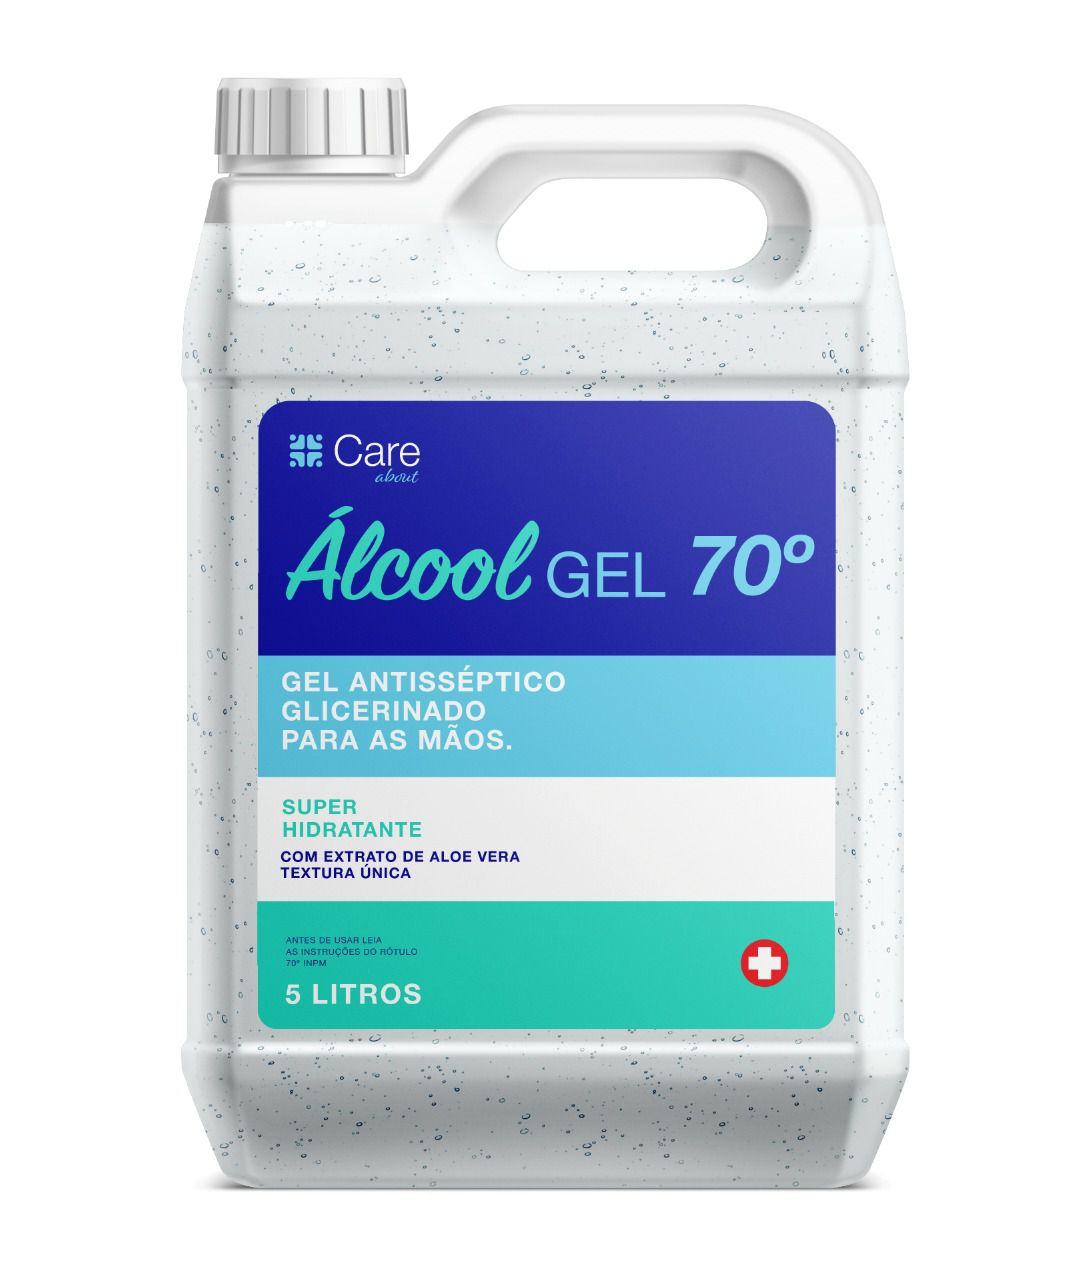 Álcool GEL 70° 5L CARE ABOUT